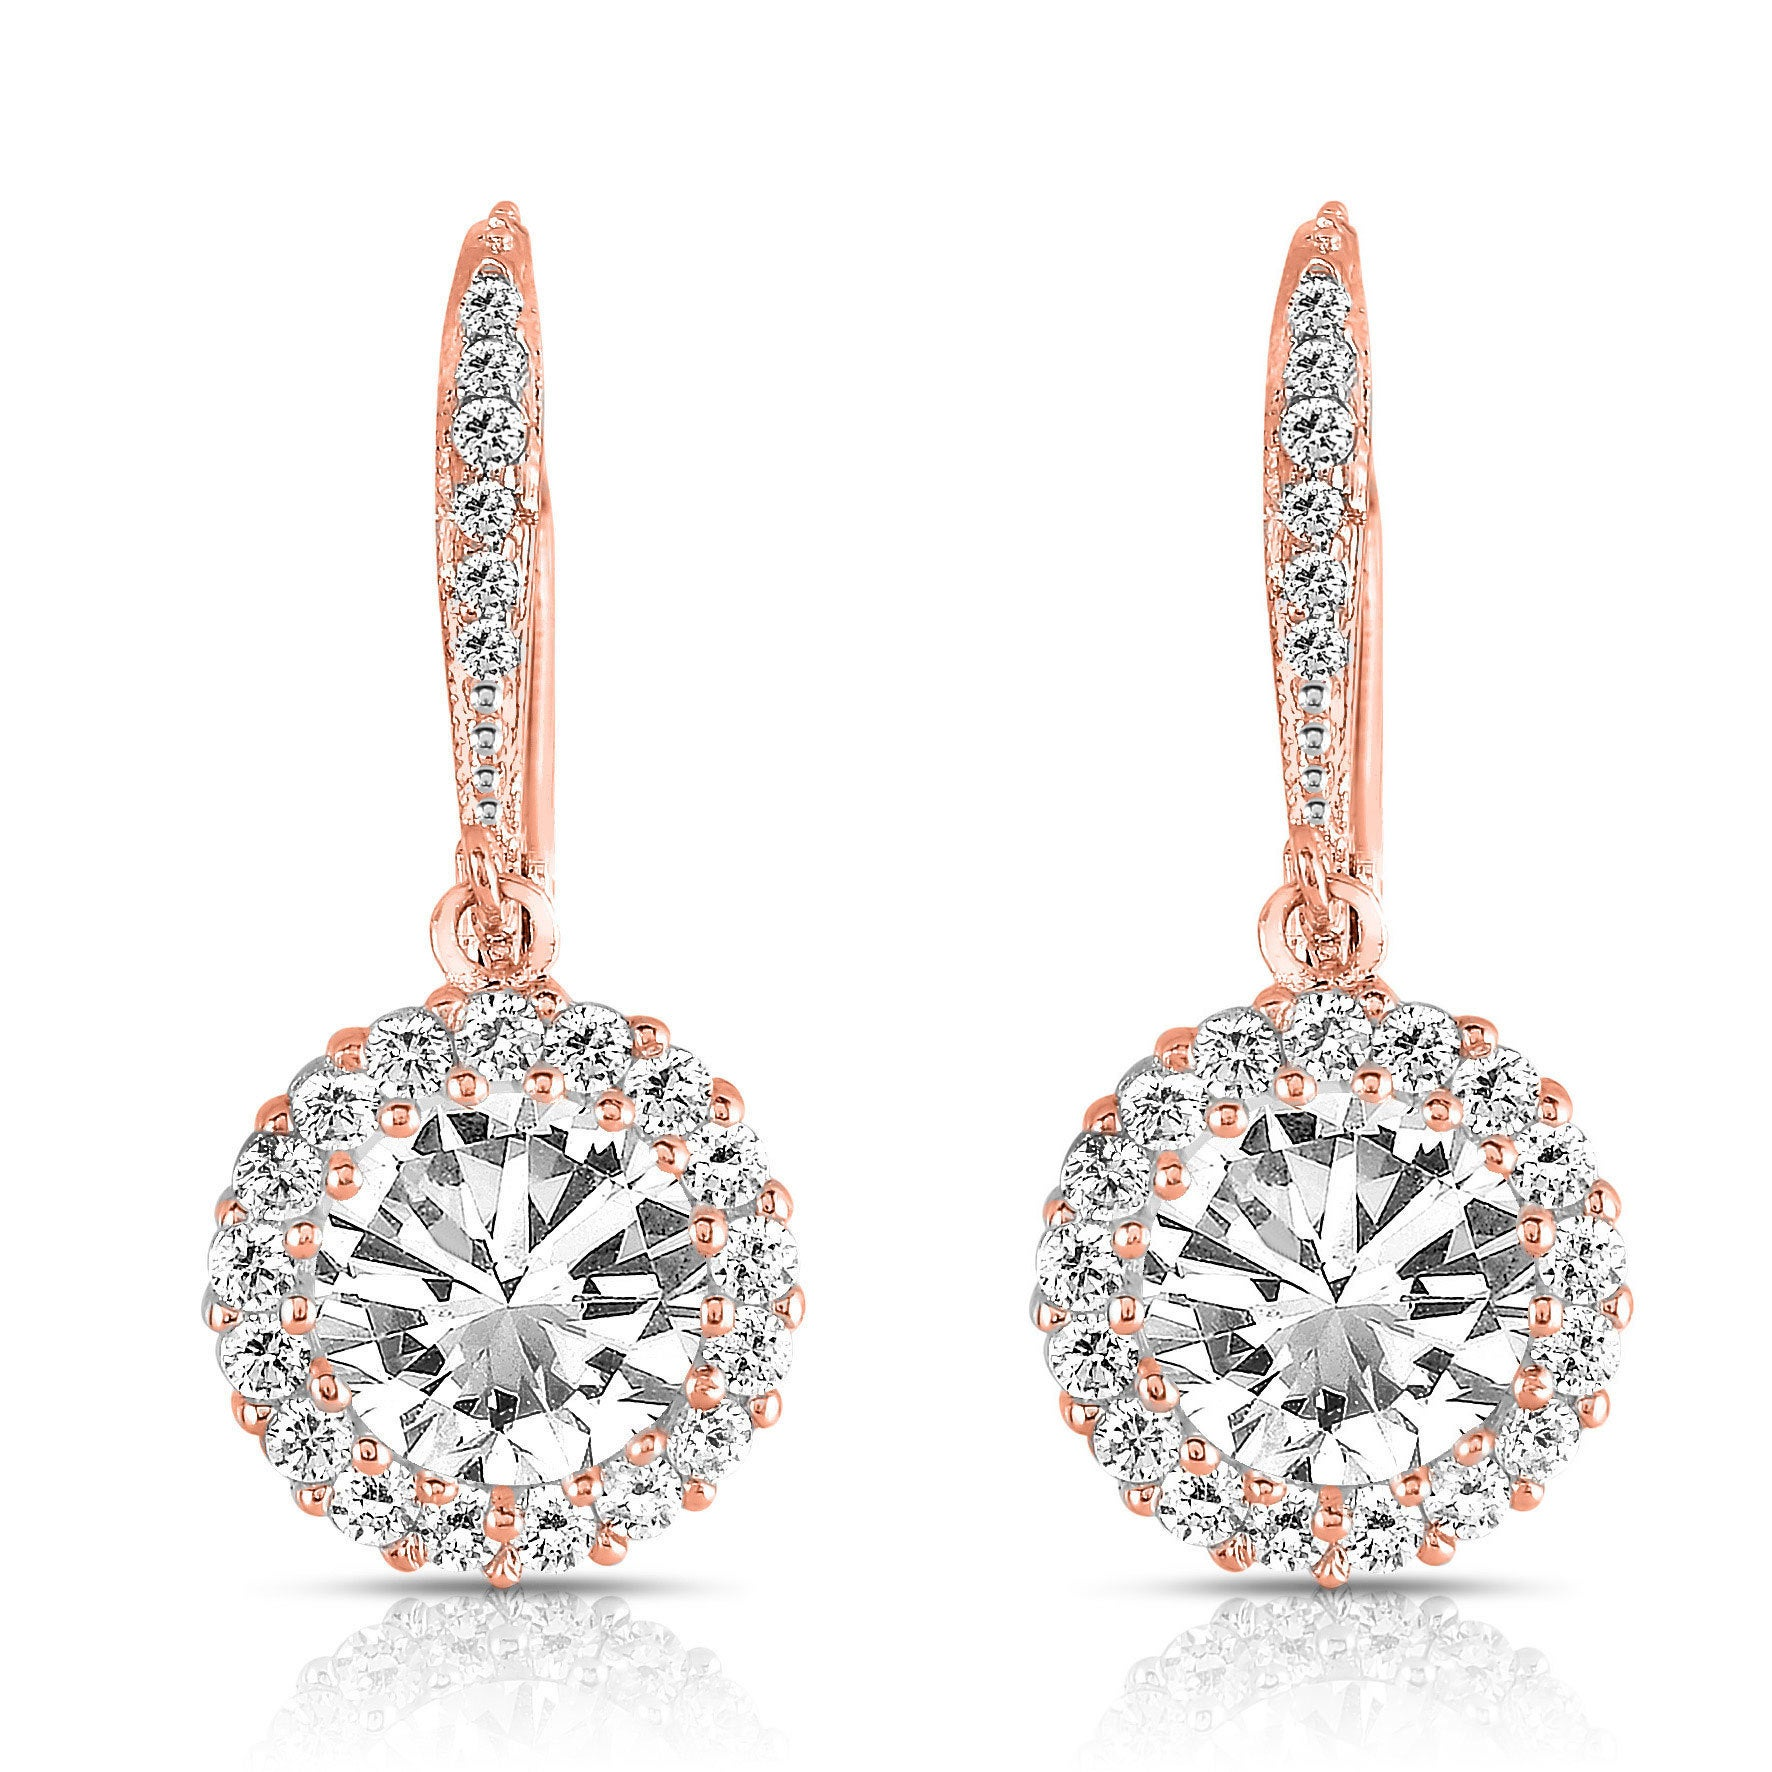 925 Sterling Silver Cubic Zirconia Cz Puzzle Pieces Drop Dangle Chandelier Earrings Fine Jewelry Gifts For Women For Her